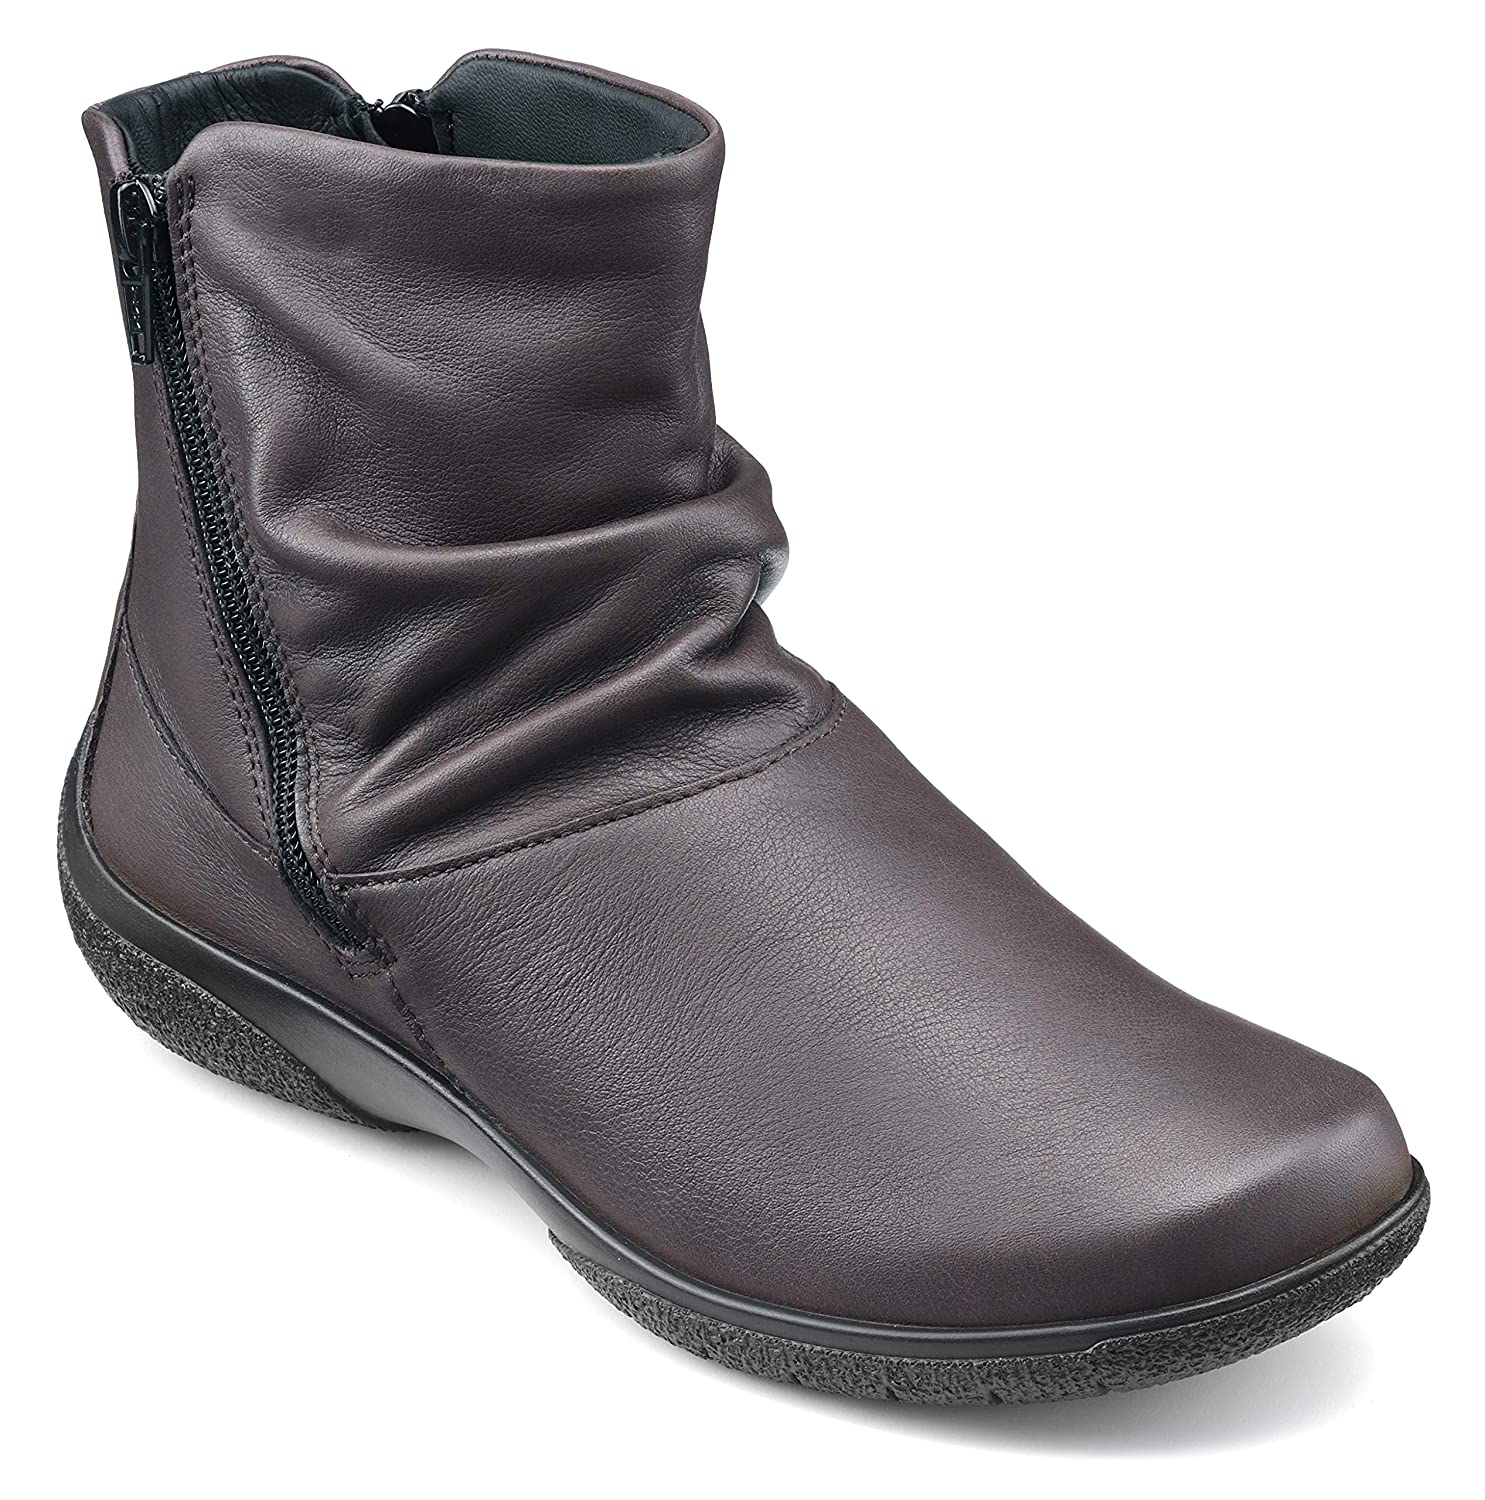 2d753c28e Hotter Womens Whisper Extra Wide Boots: Amazon.co.uk: Shoes & Bags